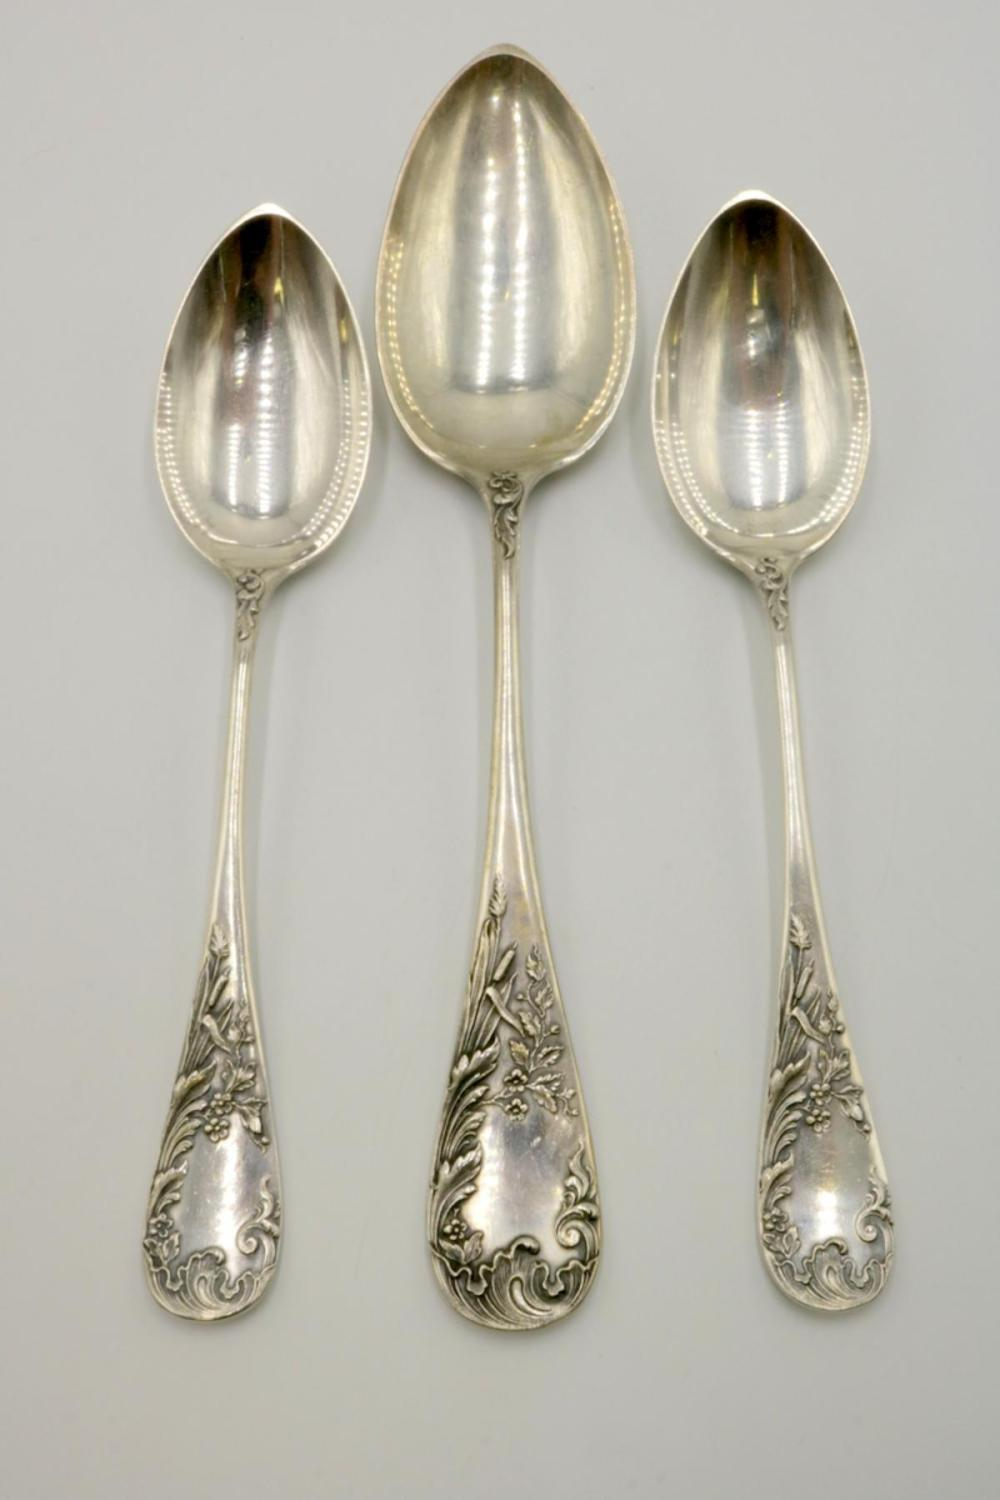 3 Pc. Russian 800 Silver Serving Spoons